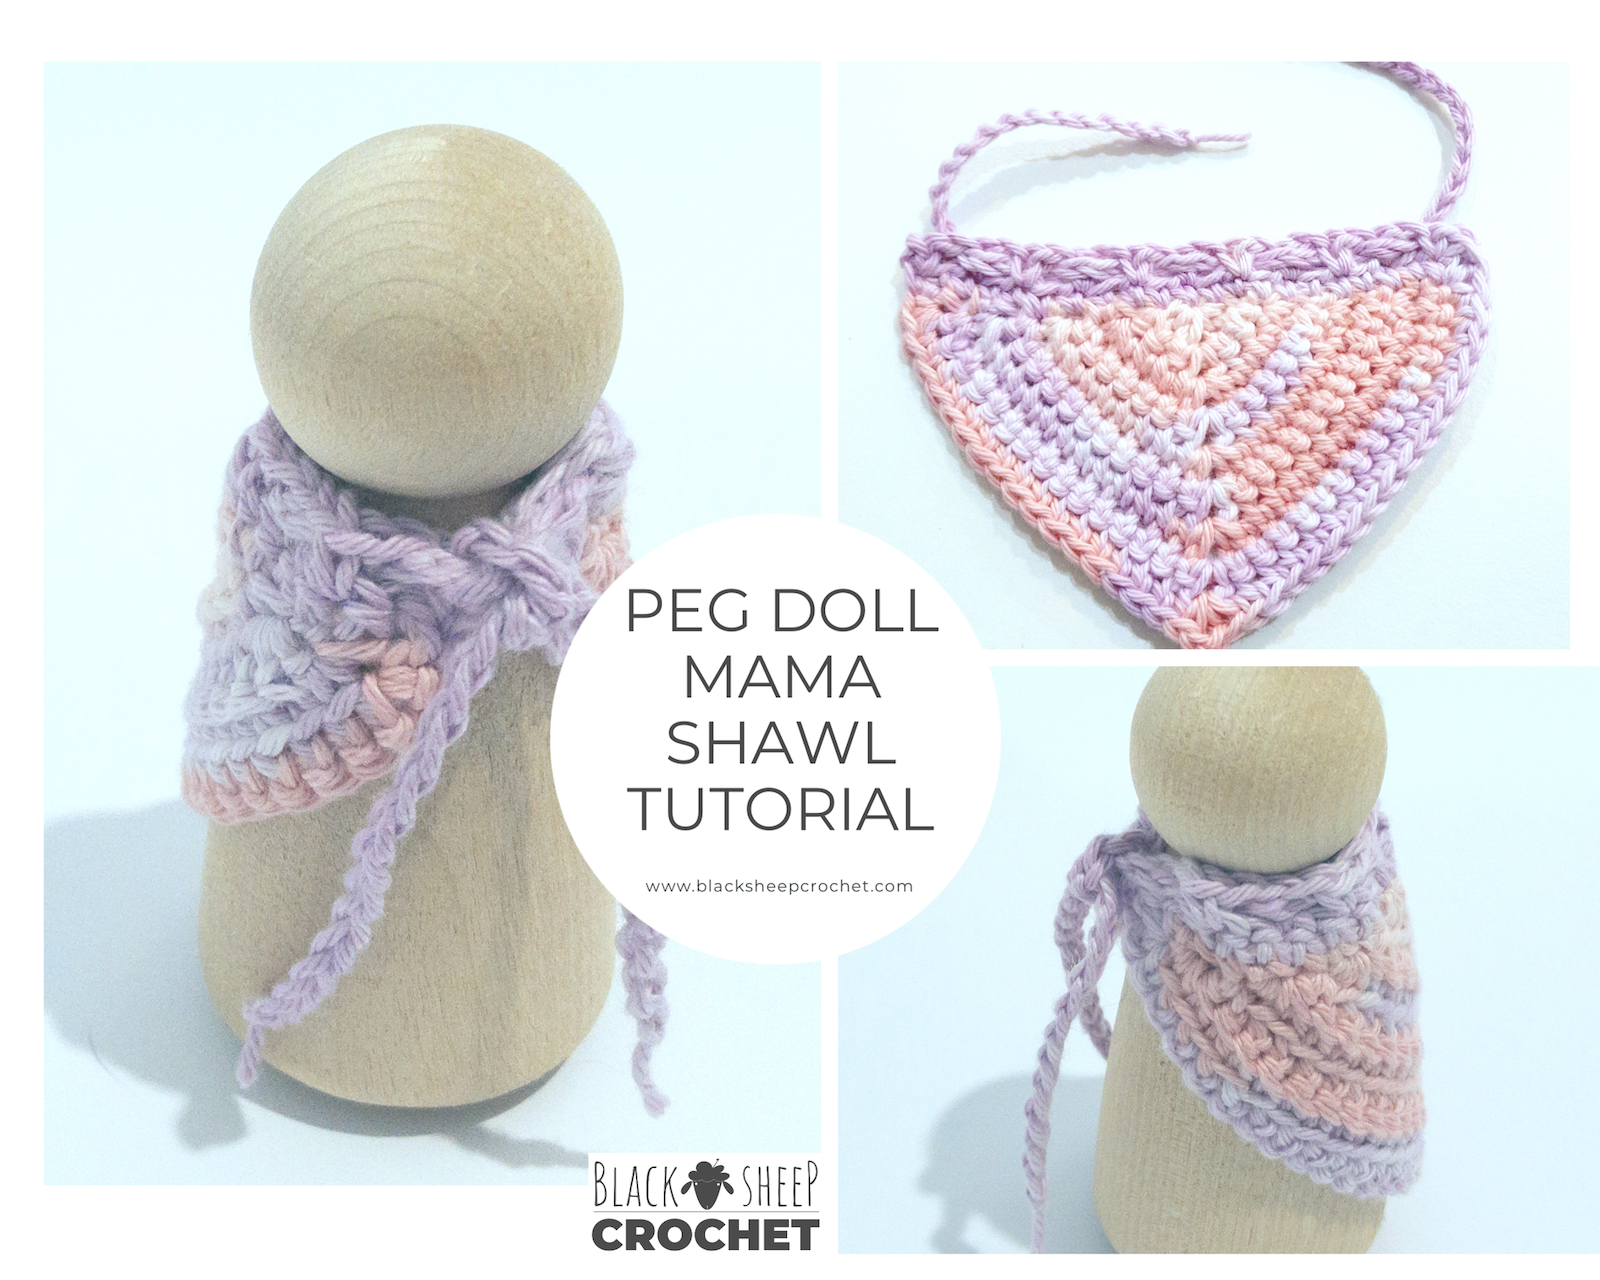 Peg Doll Mama Shawl tutorial square